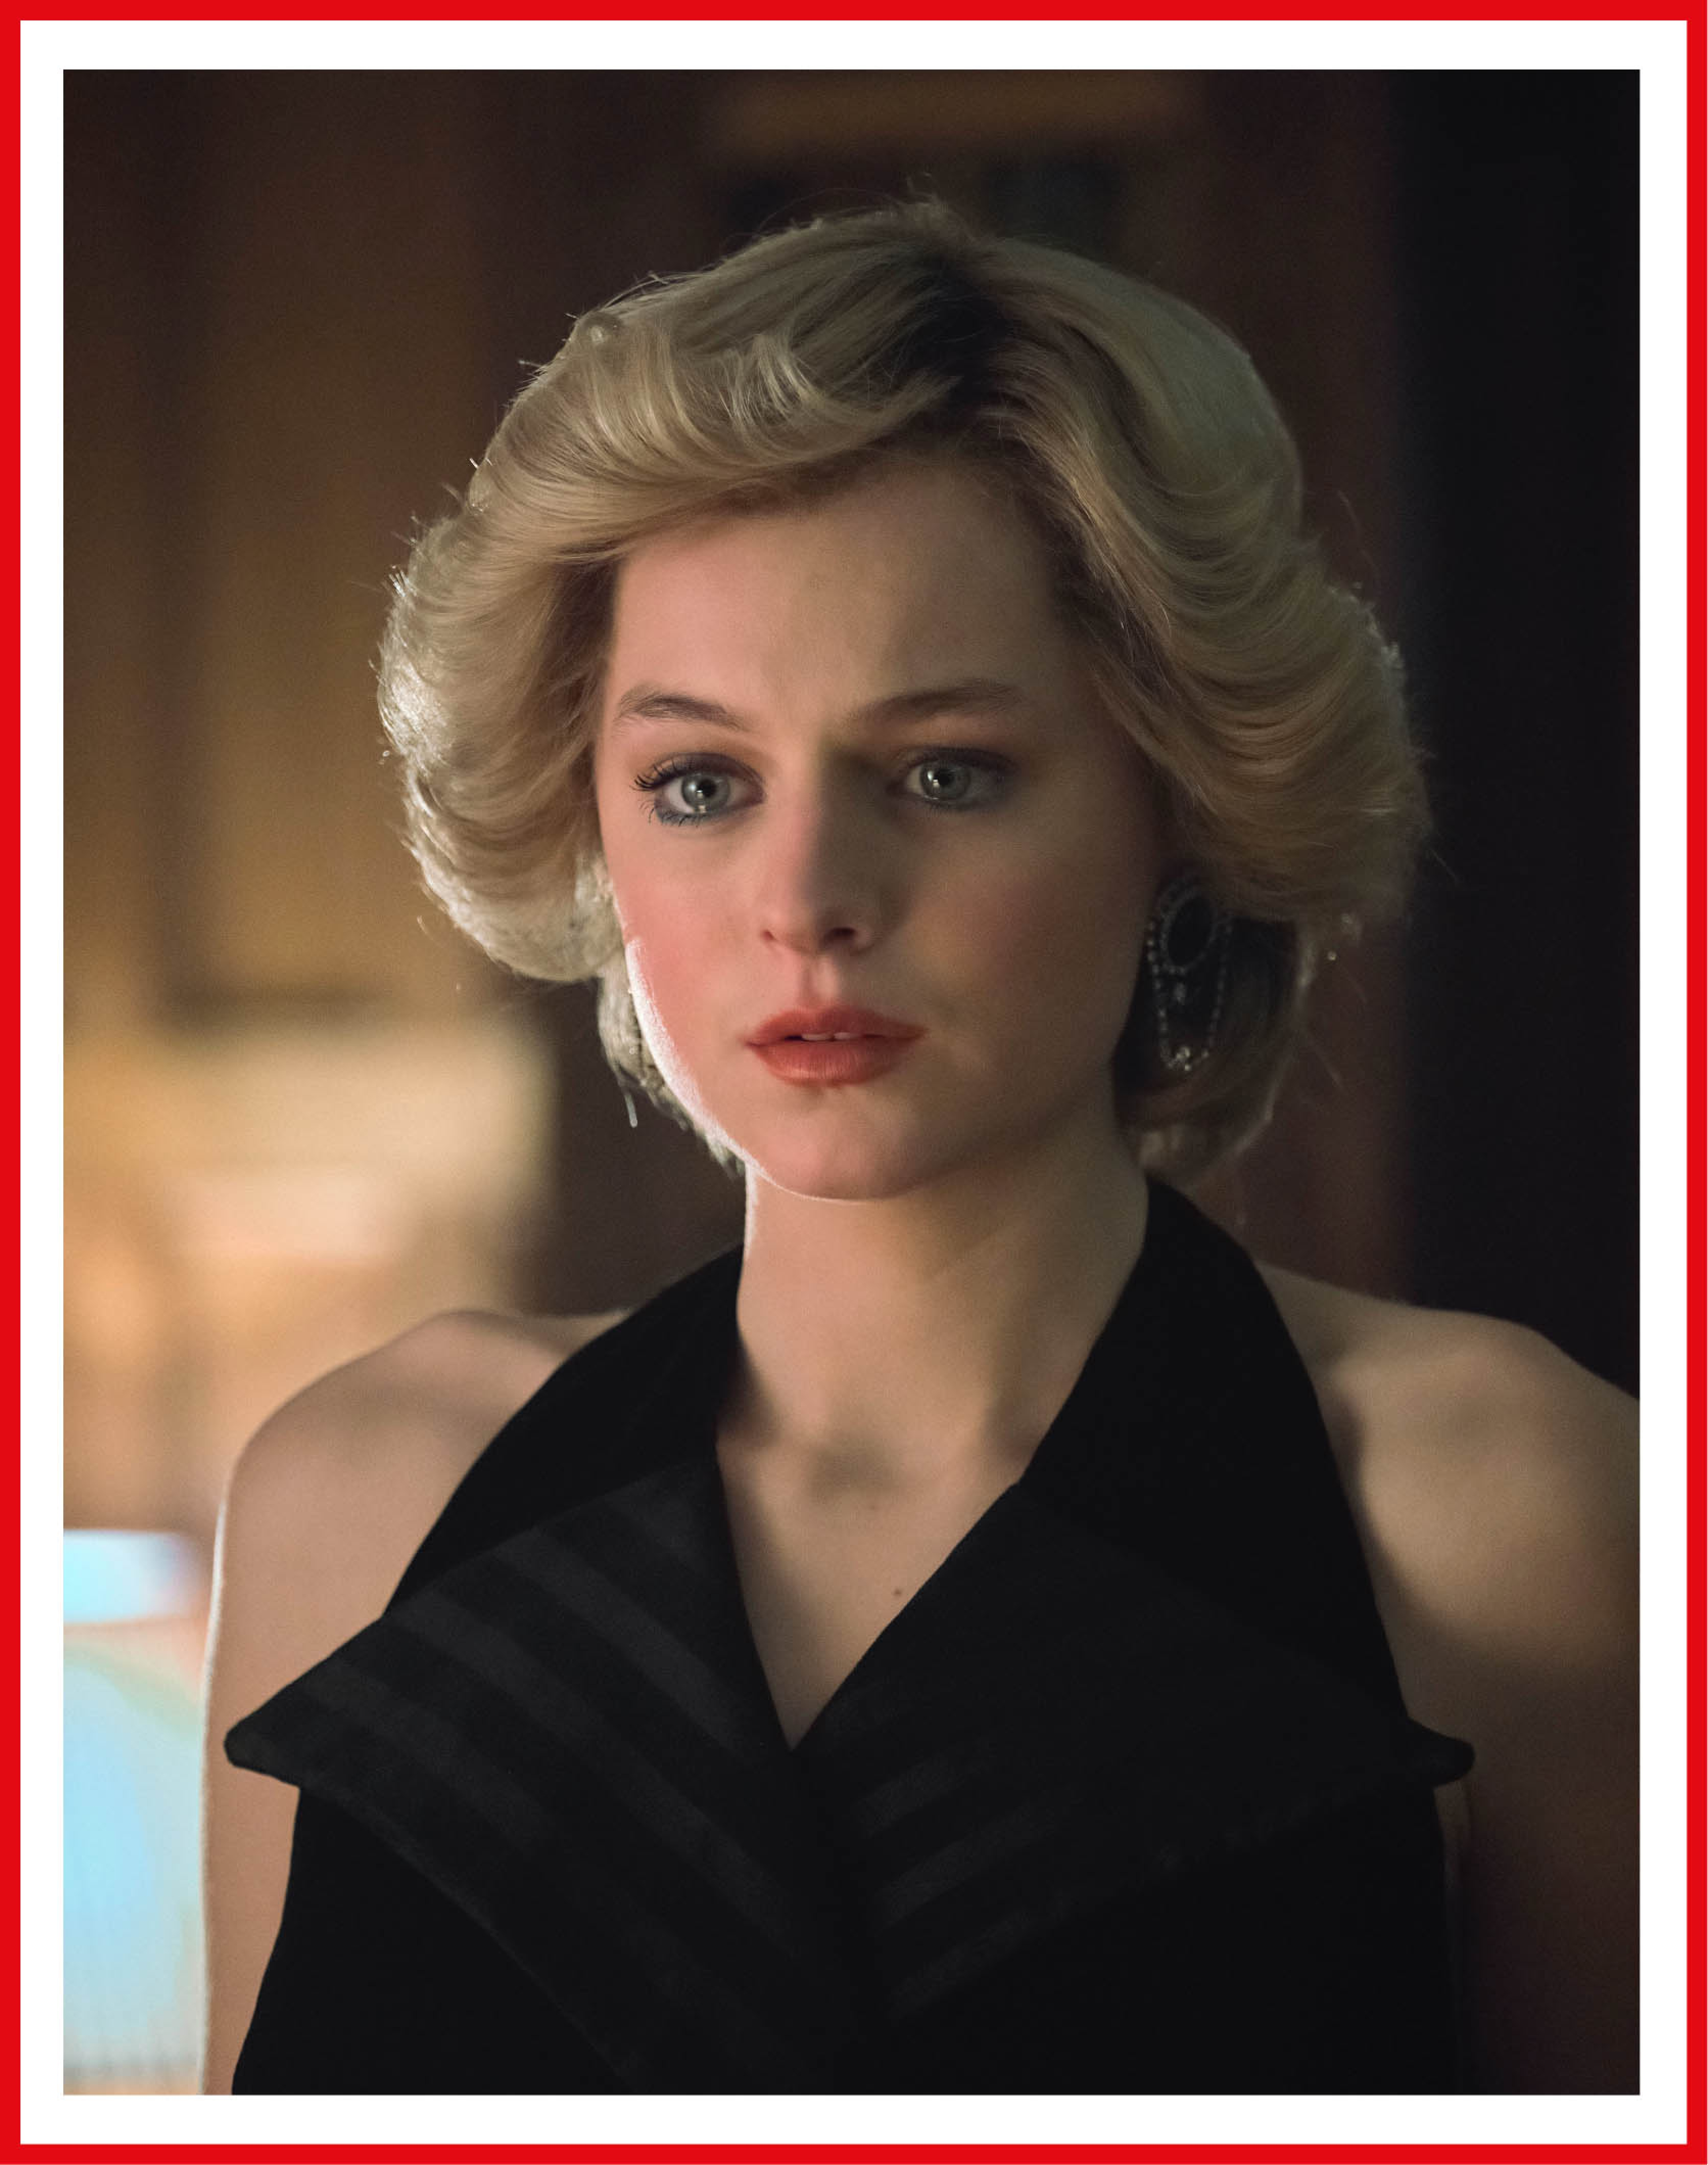 Emma Corrin as Princess Diana has a sweep of blonde hair and eyes framed in blue liner. For all the glamour, she looks troubled.